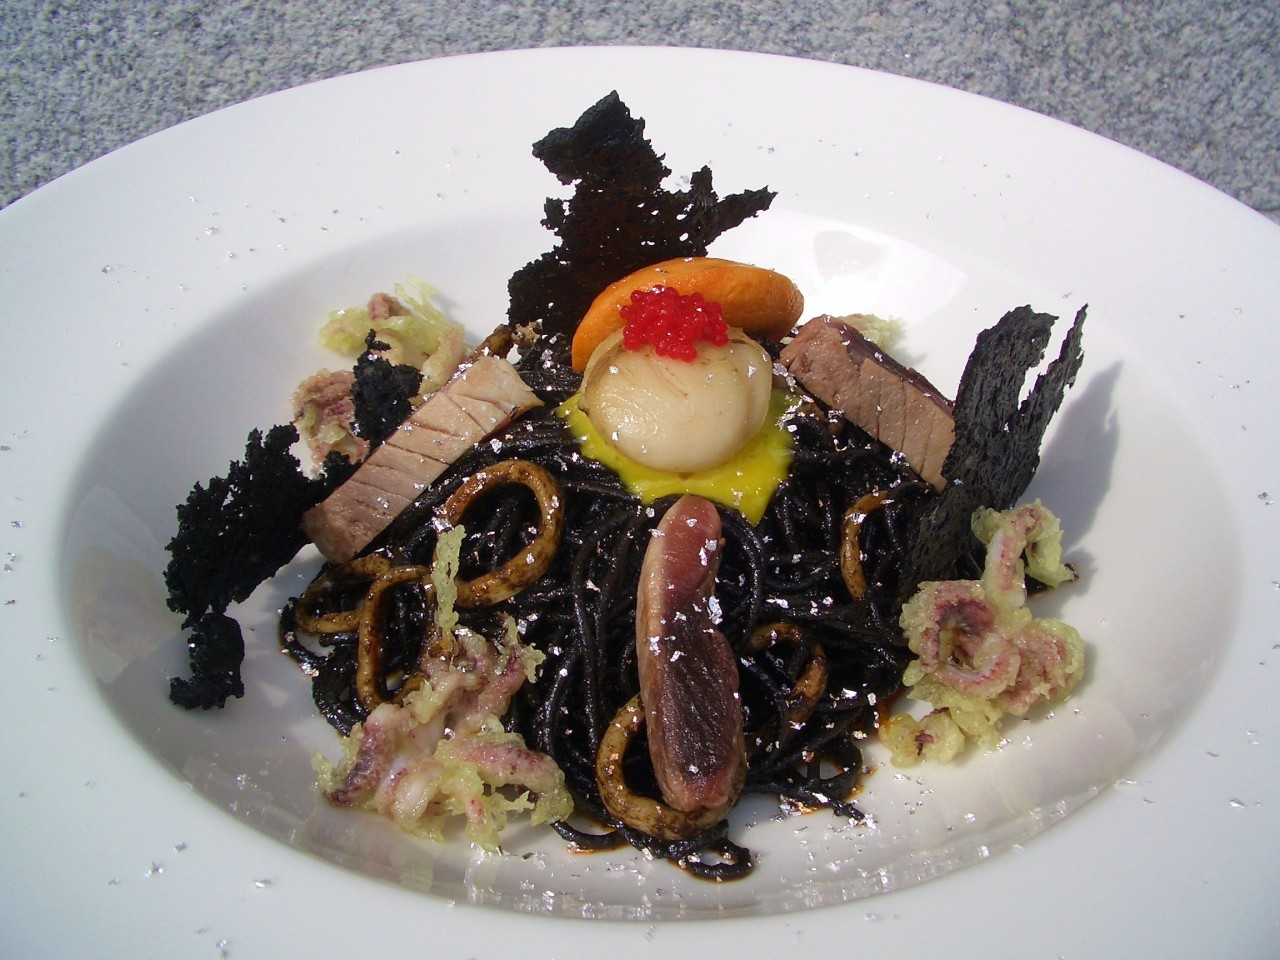 Spaghetti Nero di Sepia con Chipirones, Bonito y Vieira – Black Spaghetti with Baby Squid, Tuna and Scallop